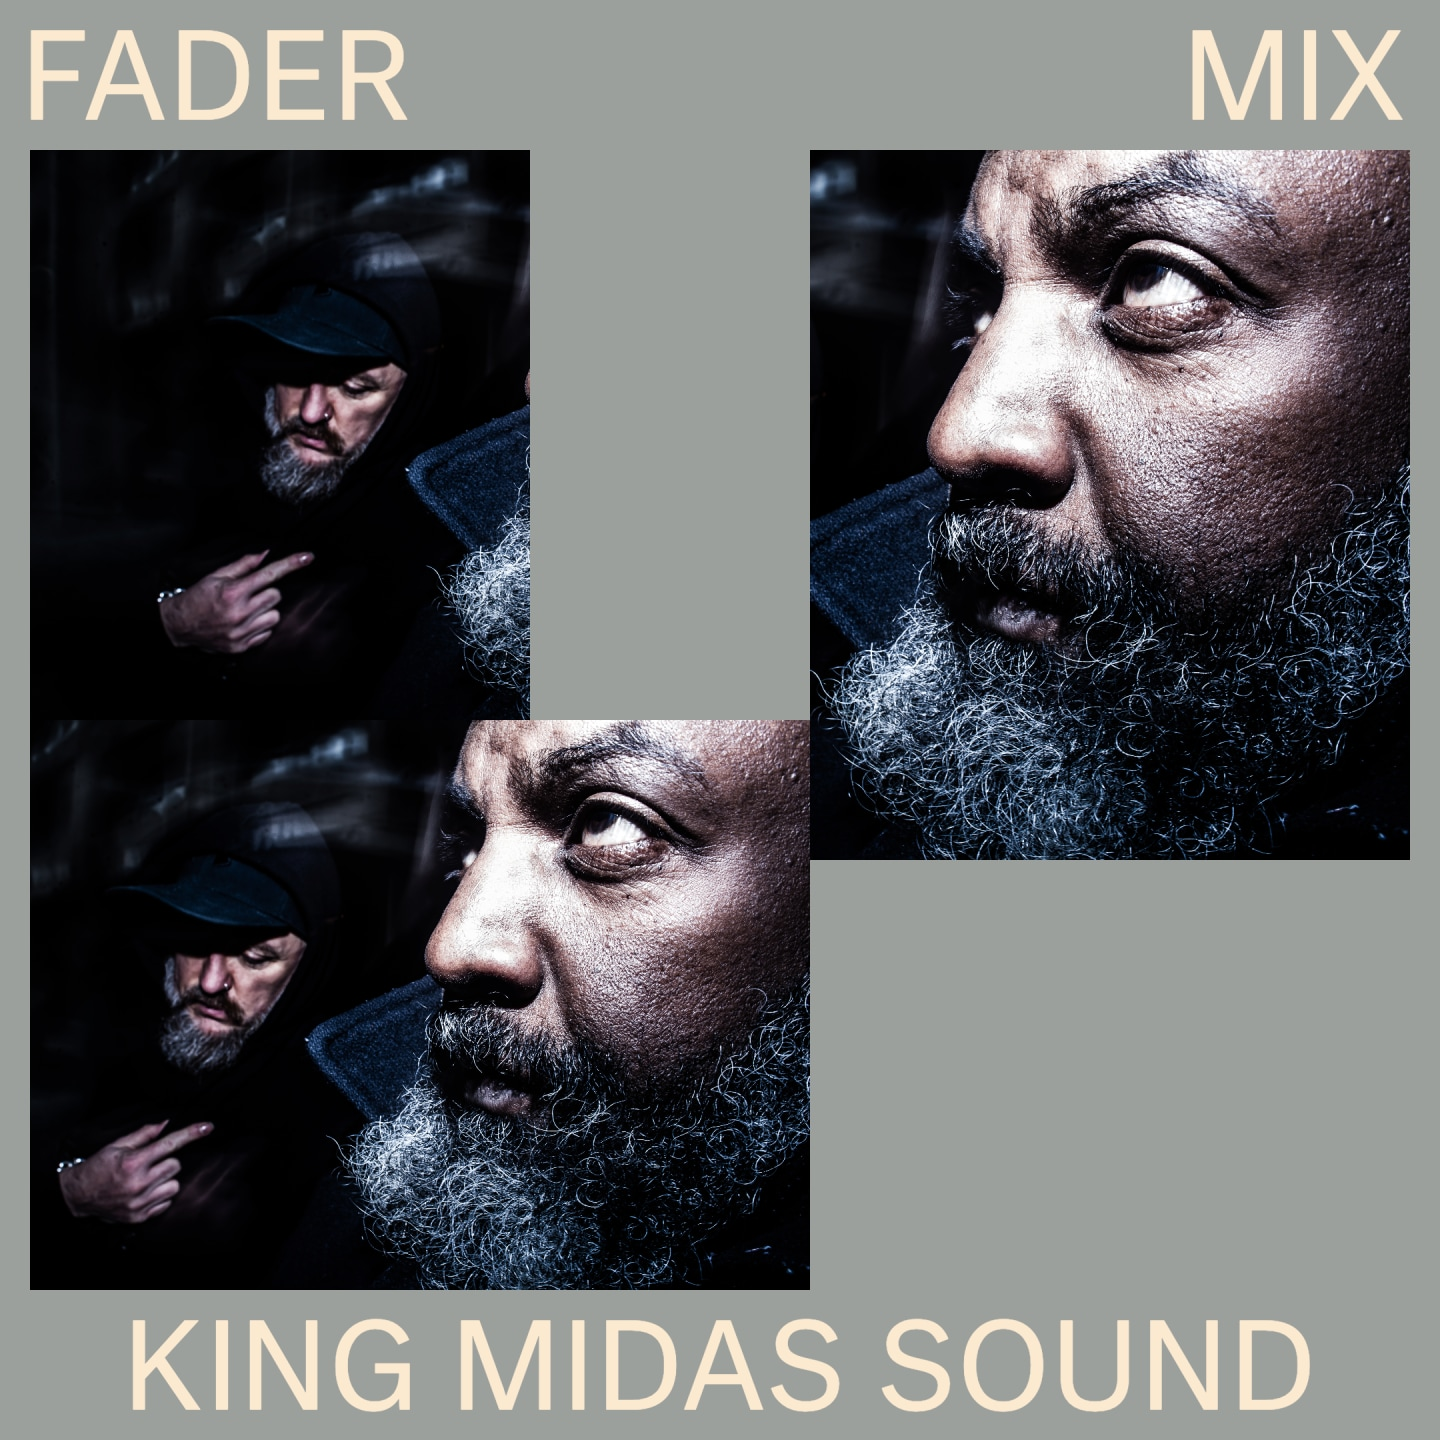 Listen to a new FADER Mix by King Midas Sound